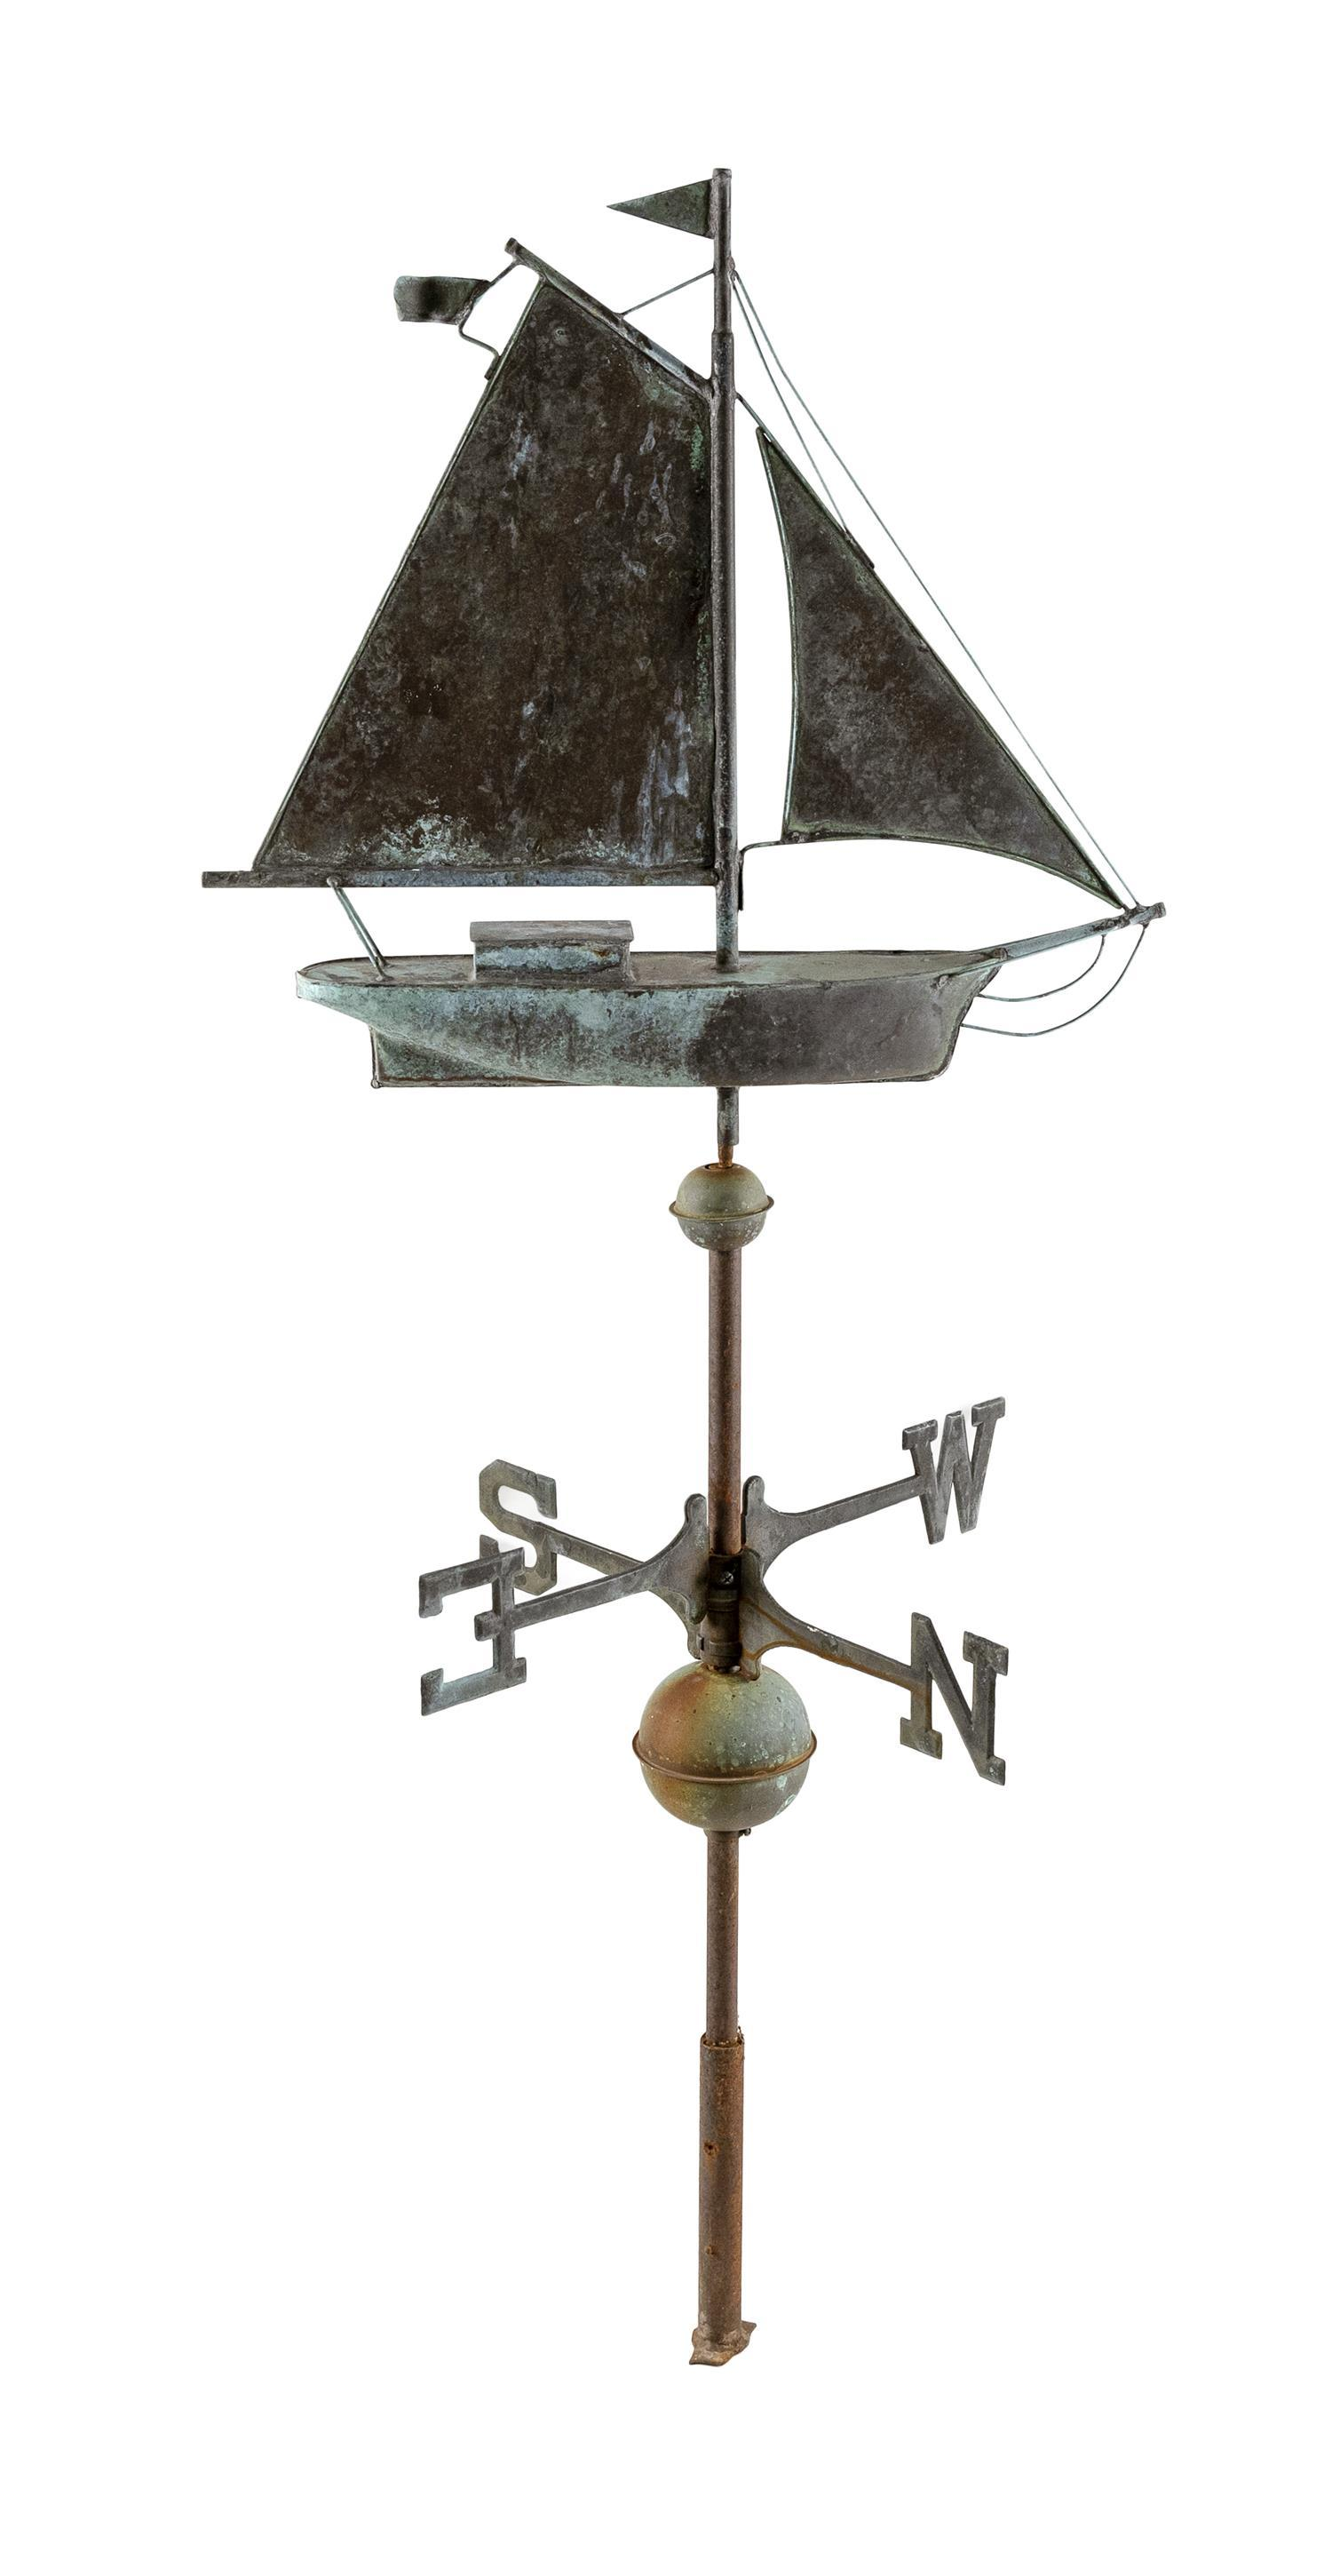 """COPPER AND ZINC WEATHER VANE IN THE FORM OF A GAFF-RIGGED VESSEL On a pole with finders. Total height 52"""". Length 22""""."""